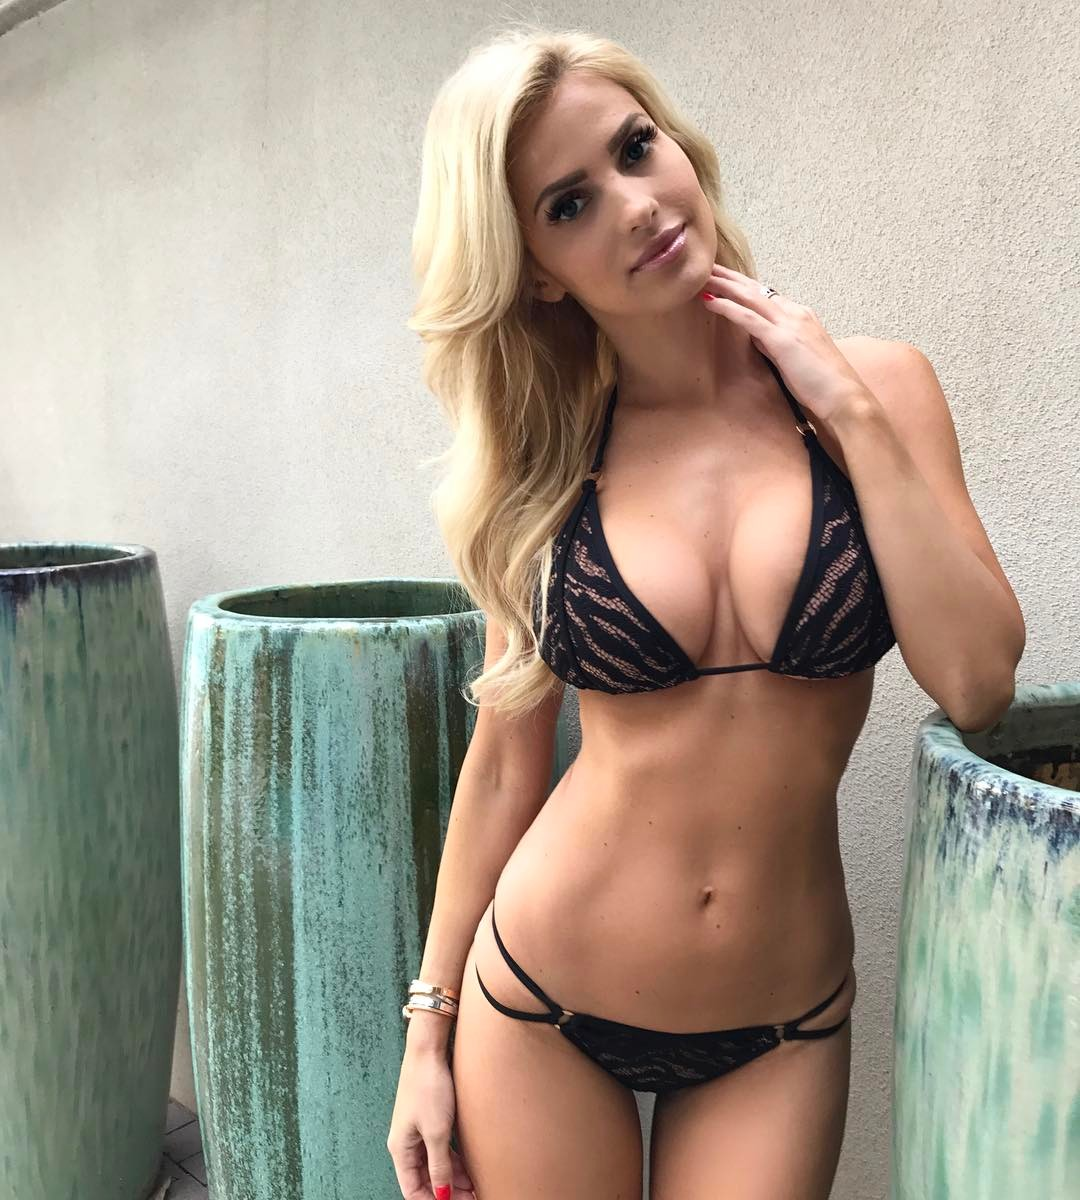 Leanna Bartlett photo 39 of 97 pics, wallpaper - photo ...